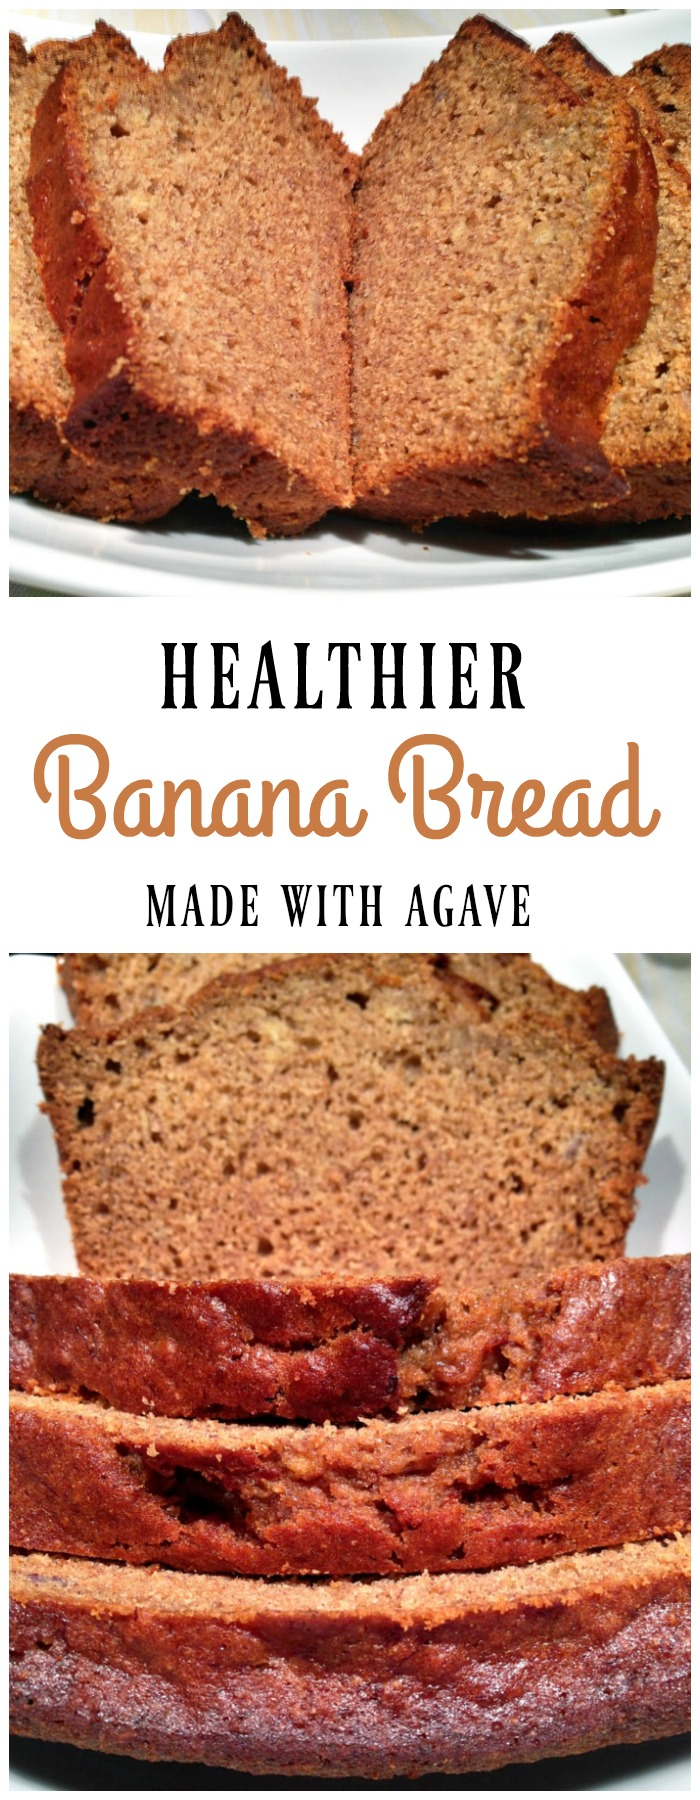 Healthier banana bread, made with agave nectar, tastes just as moist and delicious as banana bread made with traditional sugar. This banana bread recipe is perfect for creating a healthier snack or dessert.